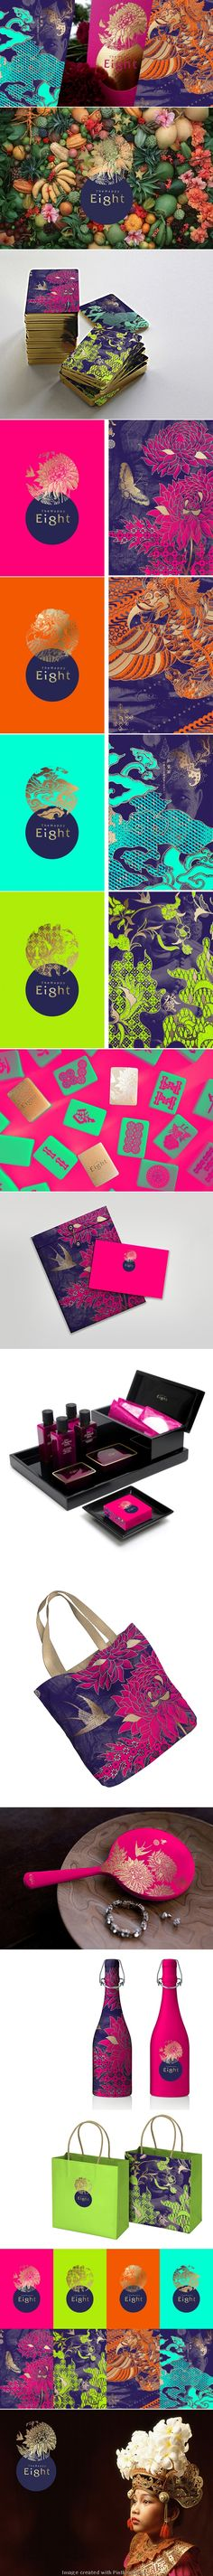 Who could resist this stellar Happy Eight Hotel #identity #packaging #branding curated by Packaging Diva PD created via http://www.thedieline.com/blog/2014/3/17/the-happy-eight-hotel-branding?utm_medium=twitterutm_source=twitterfeed